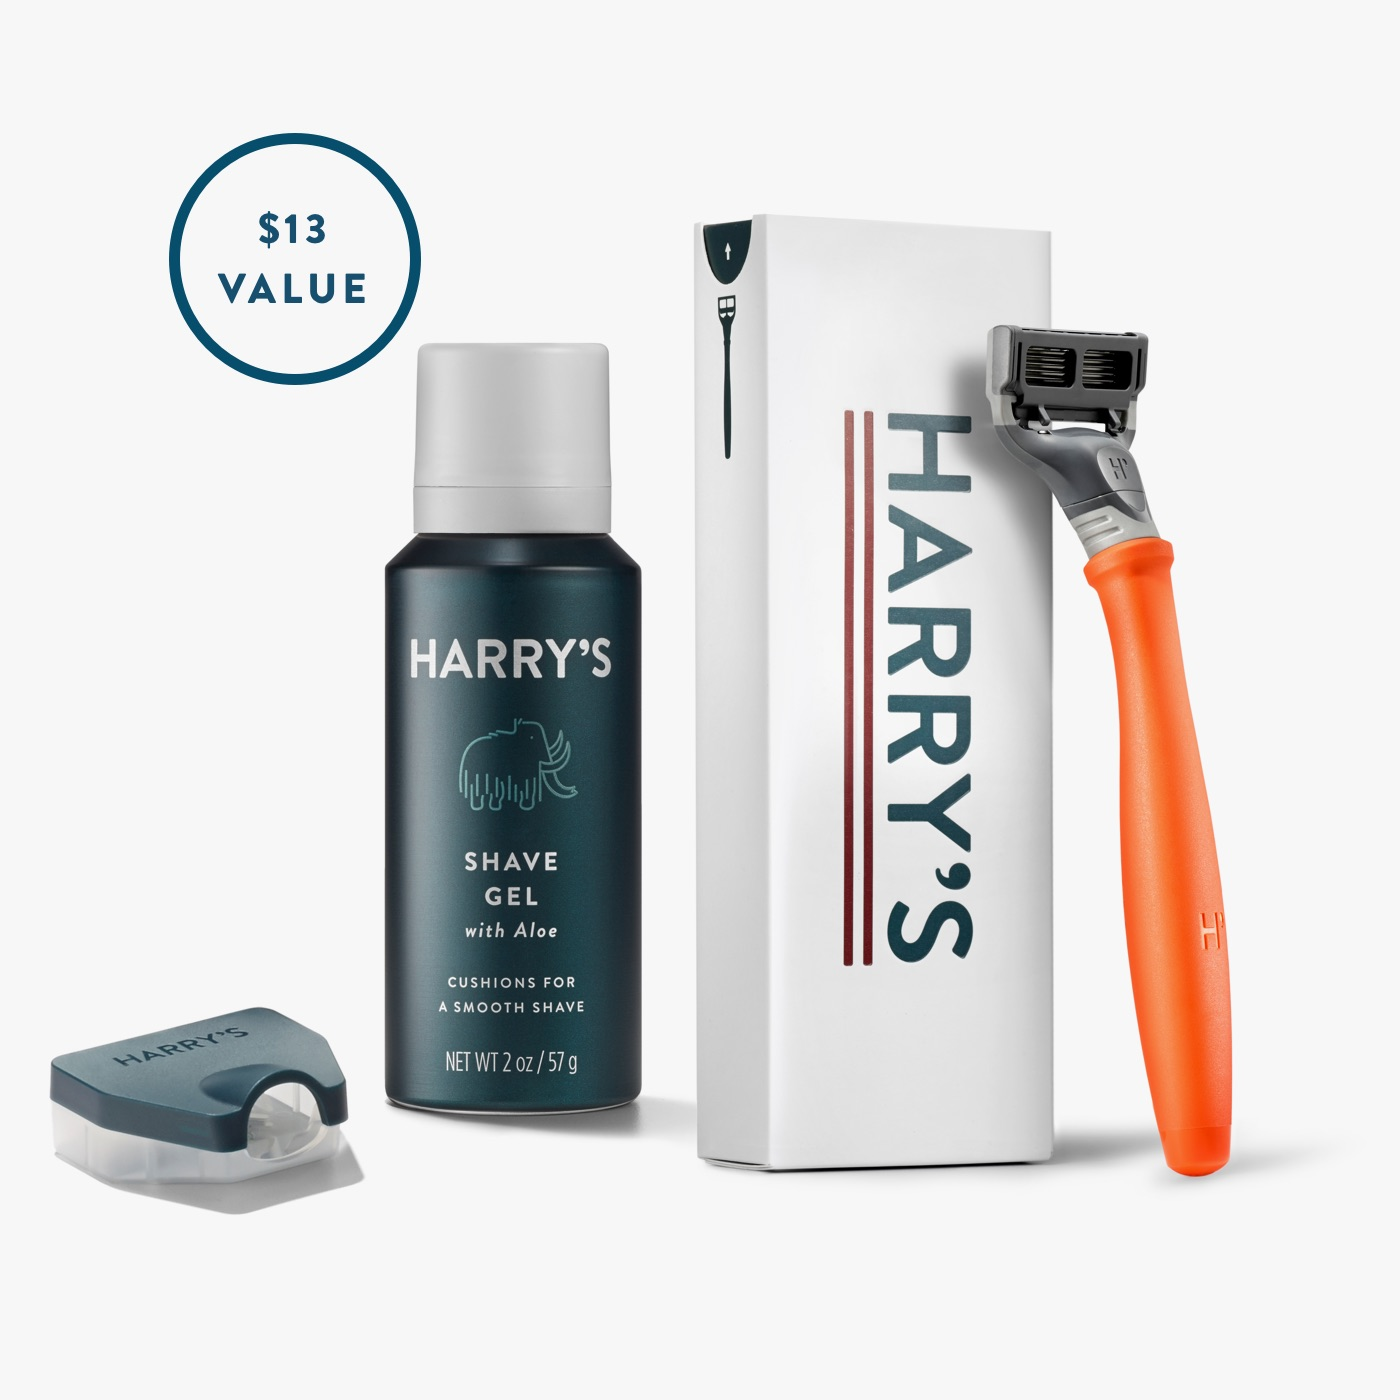 Harry's Free Trial Set with foaming shave gel, orange truman razor handle, travel blade cover and packaging